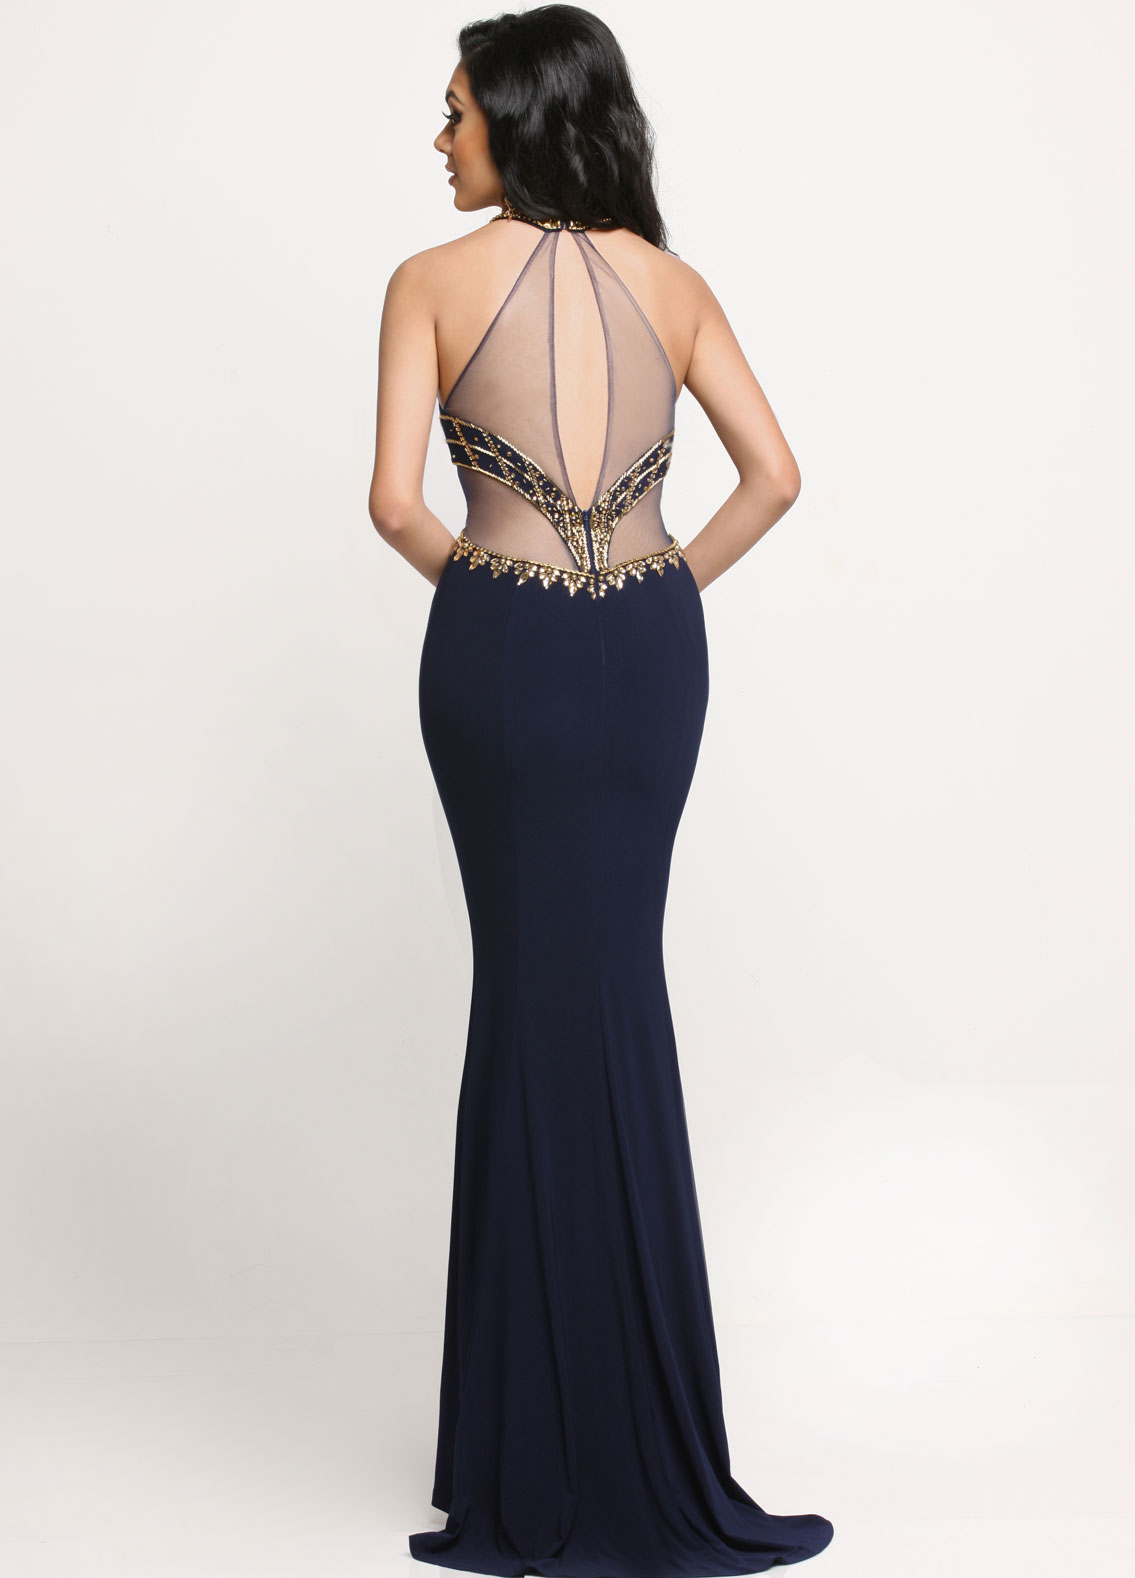 Image showing back view of style #71637